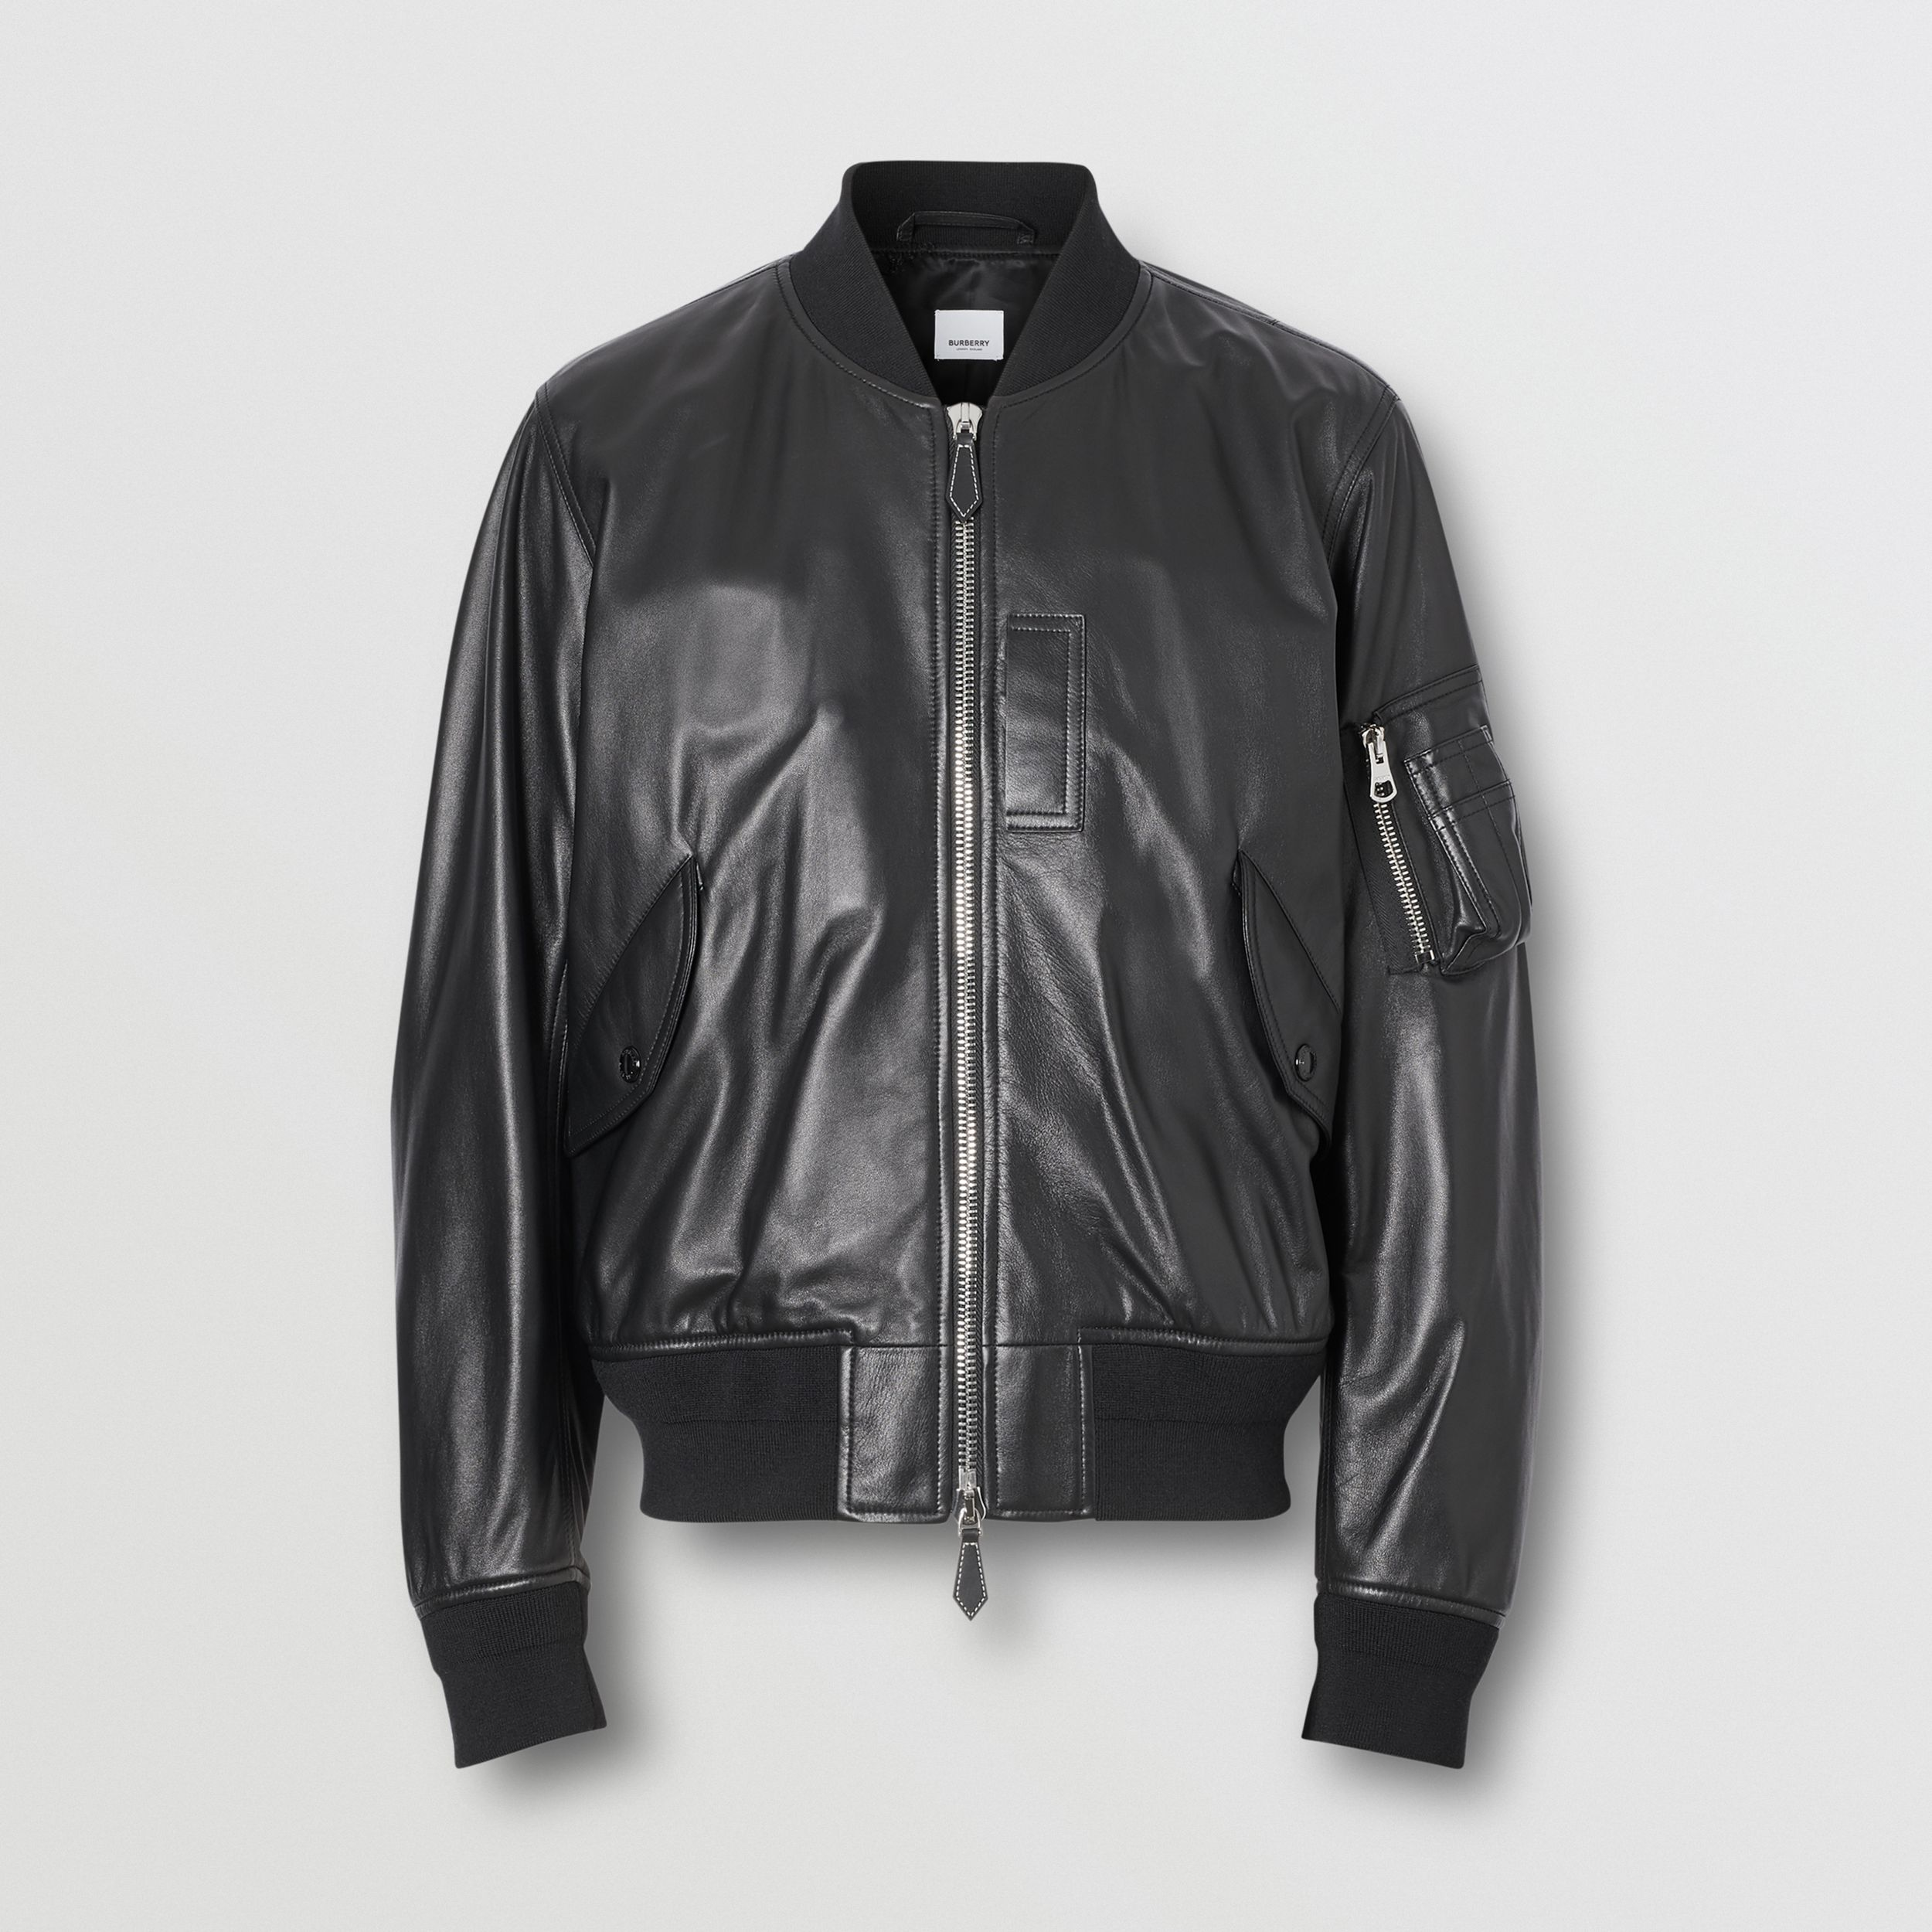 Lambskin Bomber Jacket in Black - Men | Burberry Australia - 4